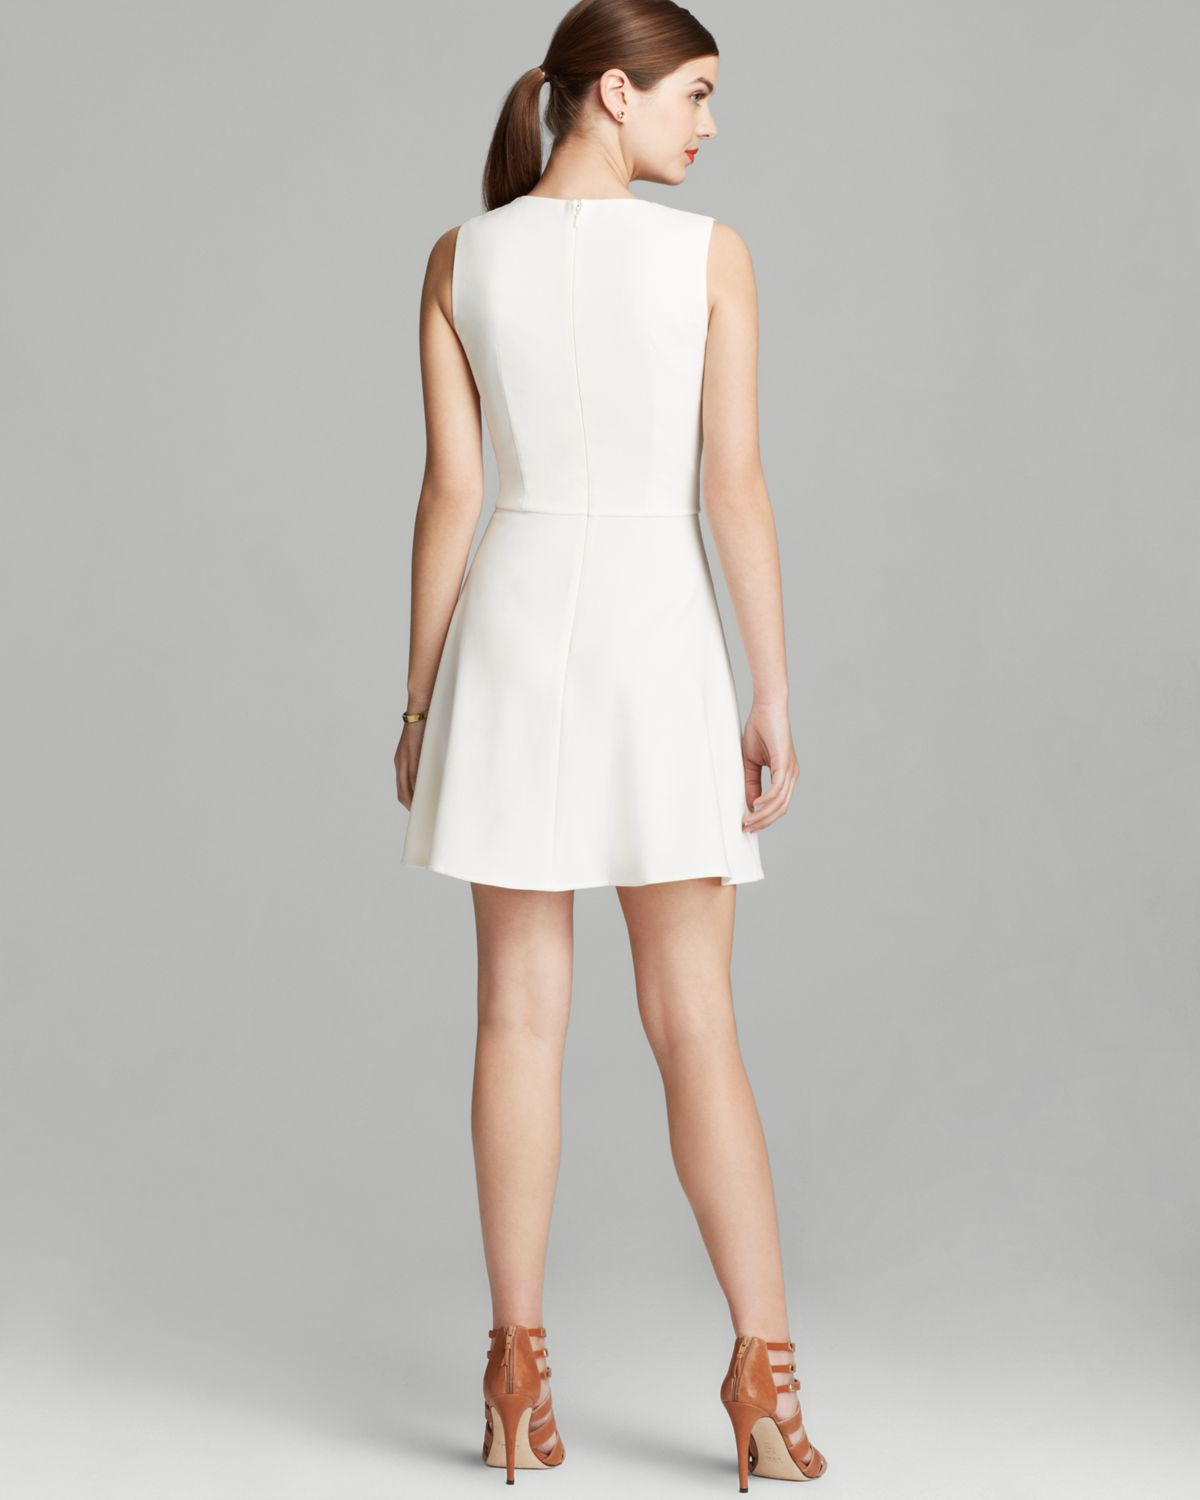 86279875b7c French Connection Dress Feather Ruth Classics Cutout in White - Lyst